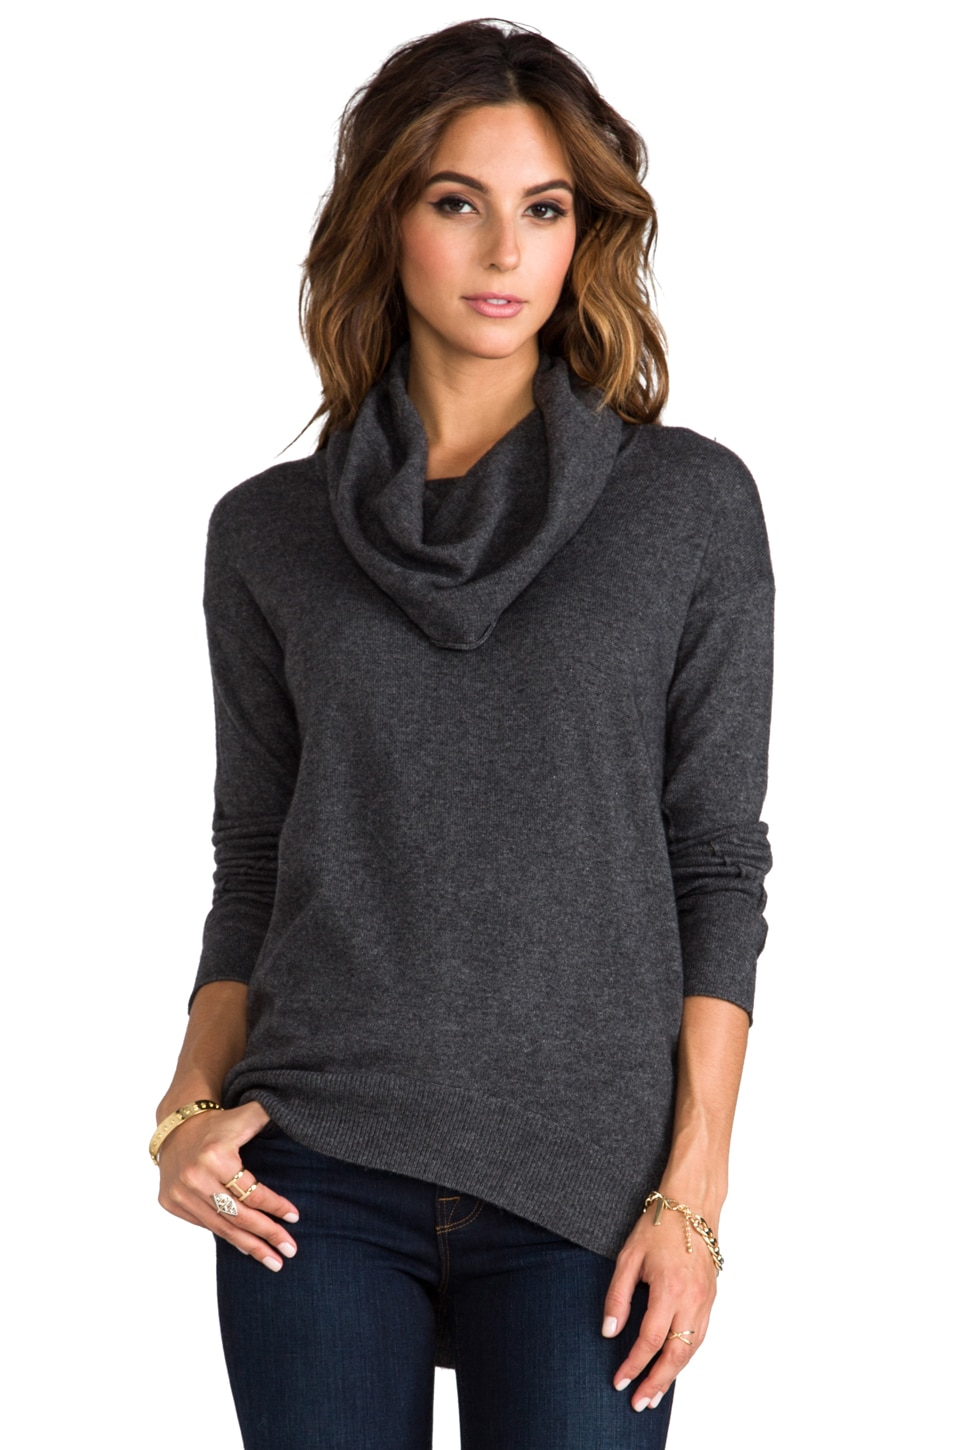 Joie Jordan Sweater in Heather